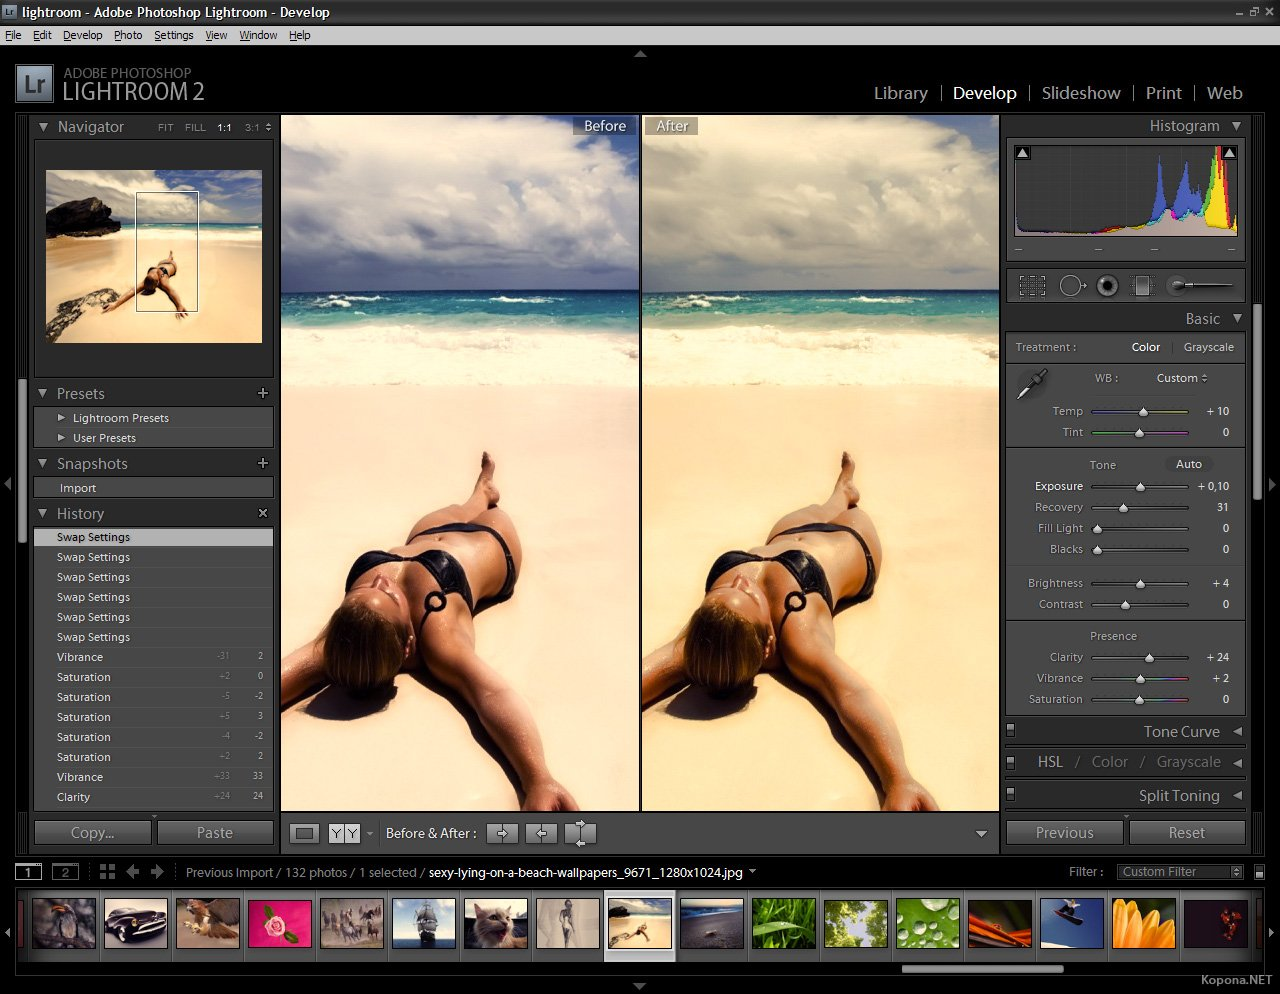 Adobe photoshop lightroom v3.6 multilingual incl keymaker